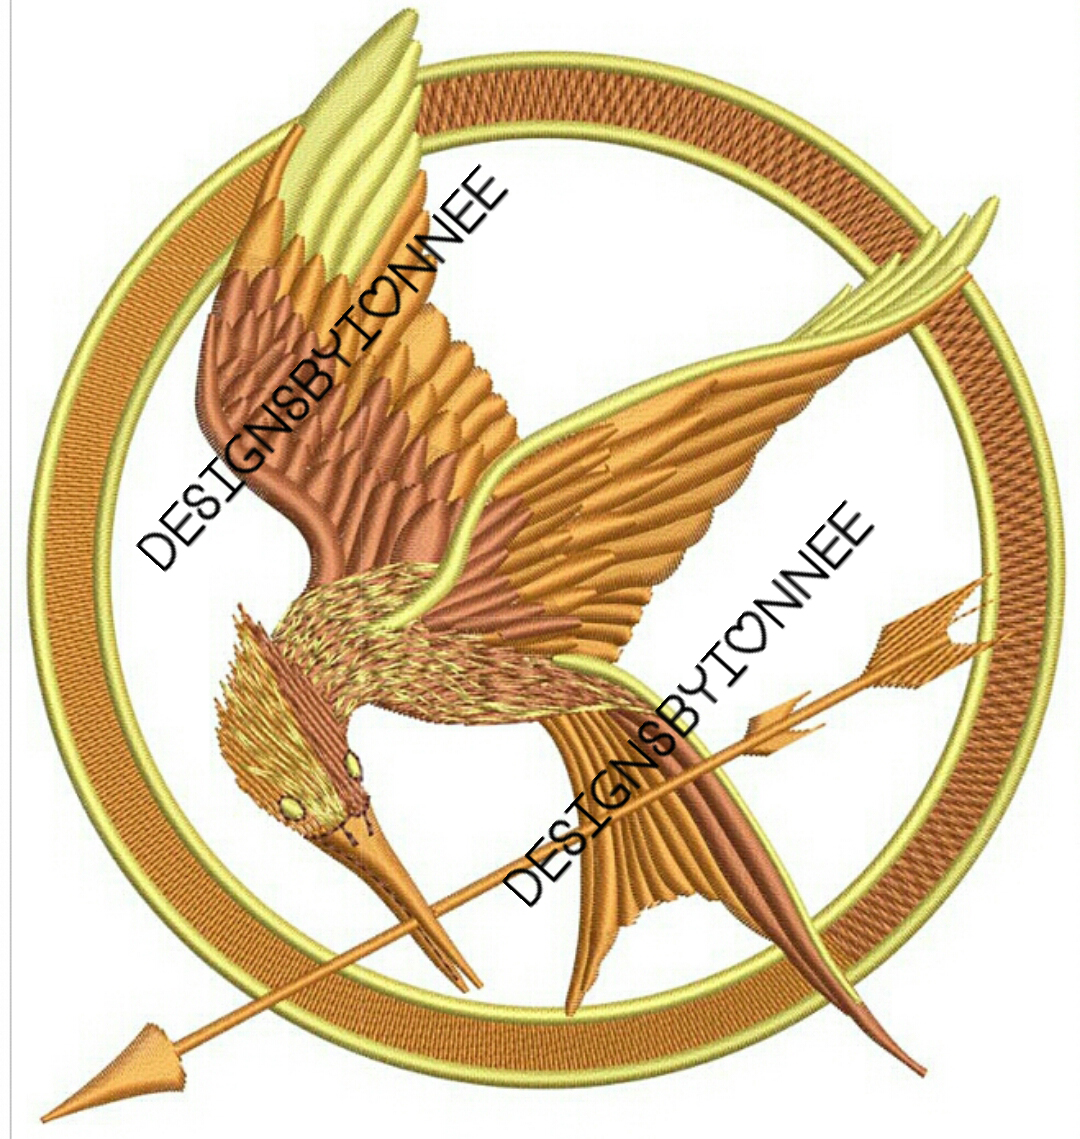 The Hunger Games Logo Embroidery Design -The Hunger Games Logo Embroidery Design 2 Sizes-15